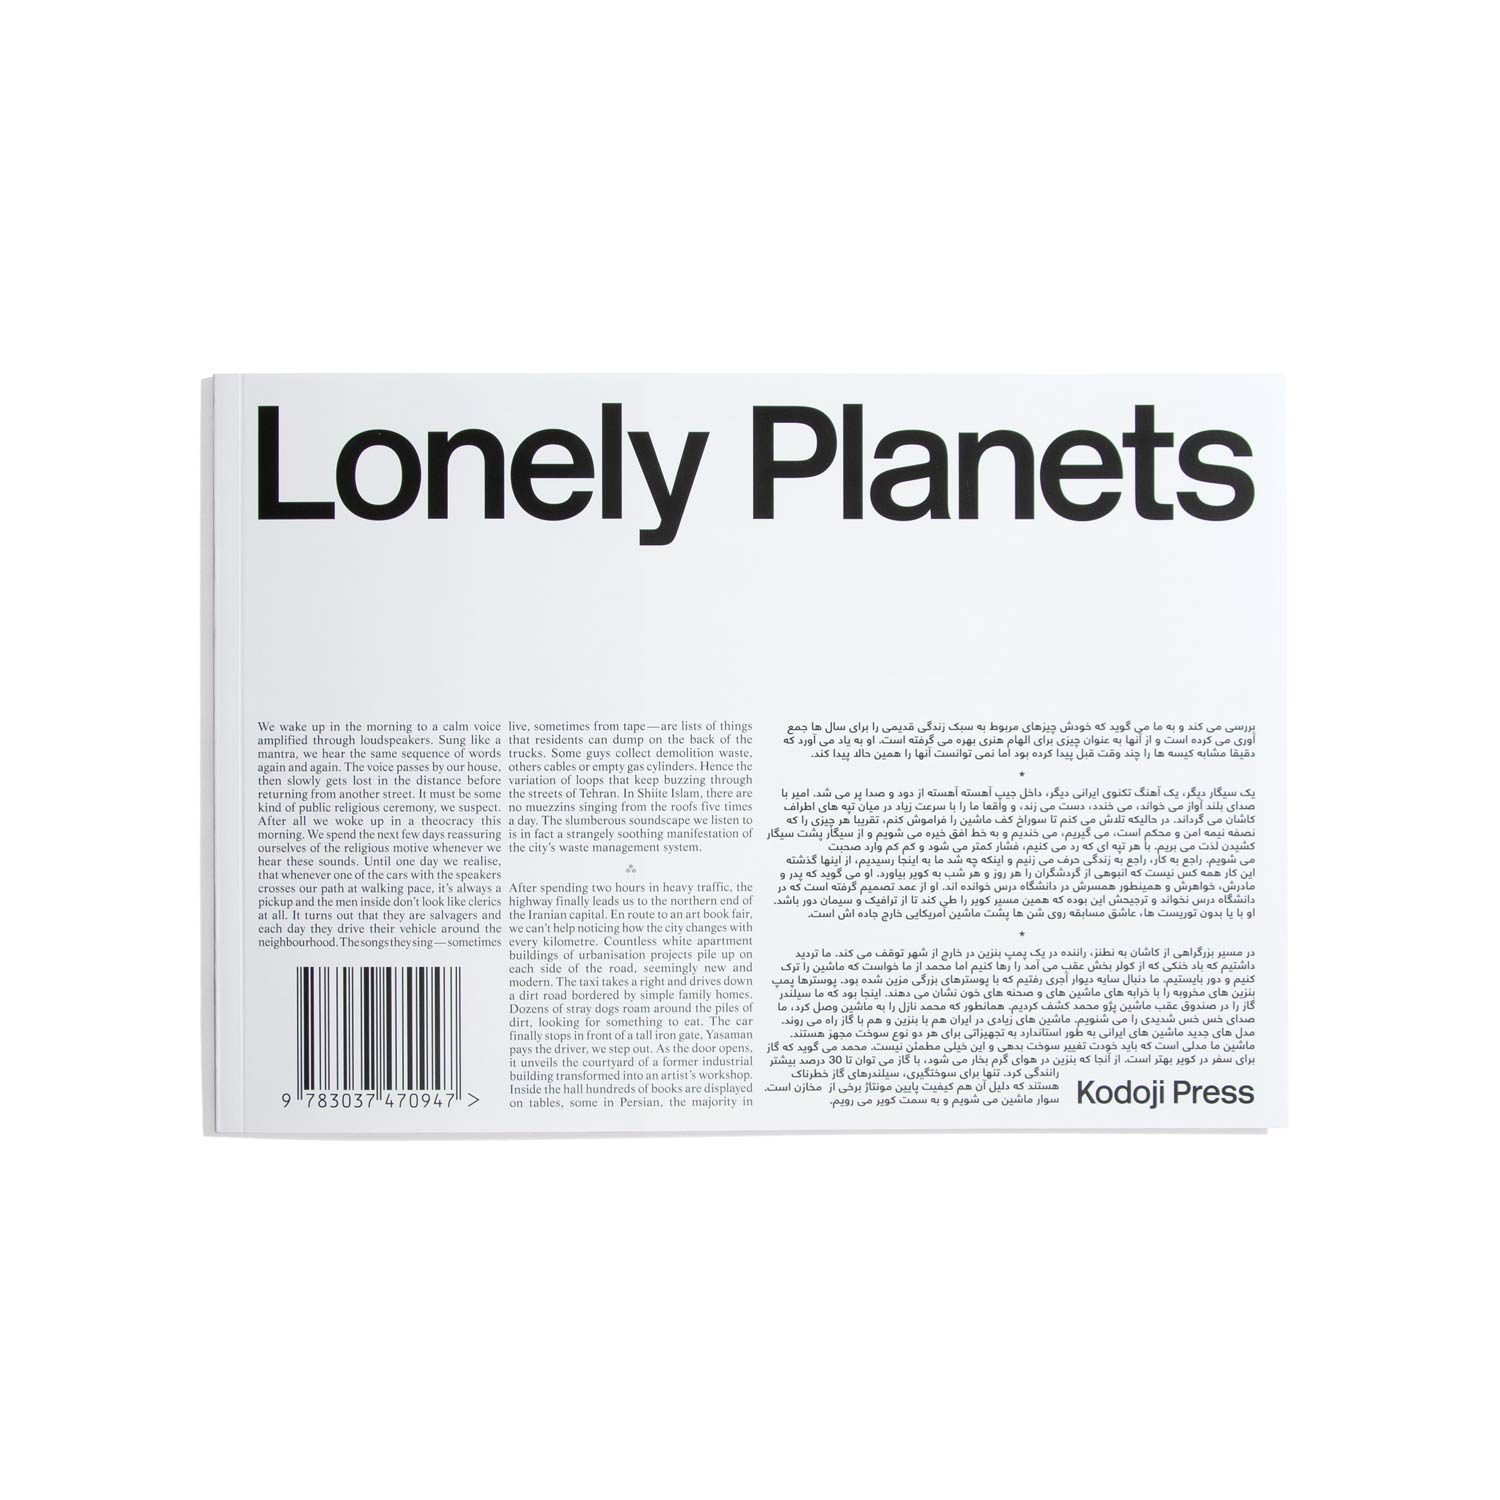 Lonely Planets - Atlas Studio